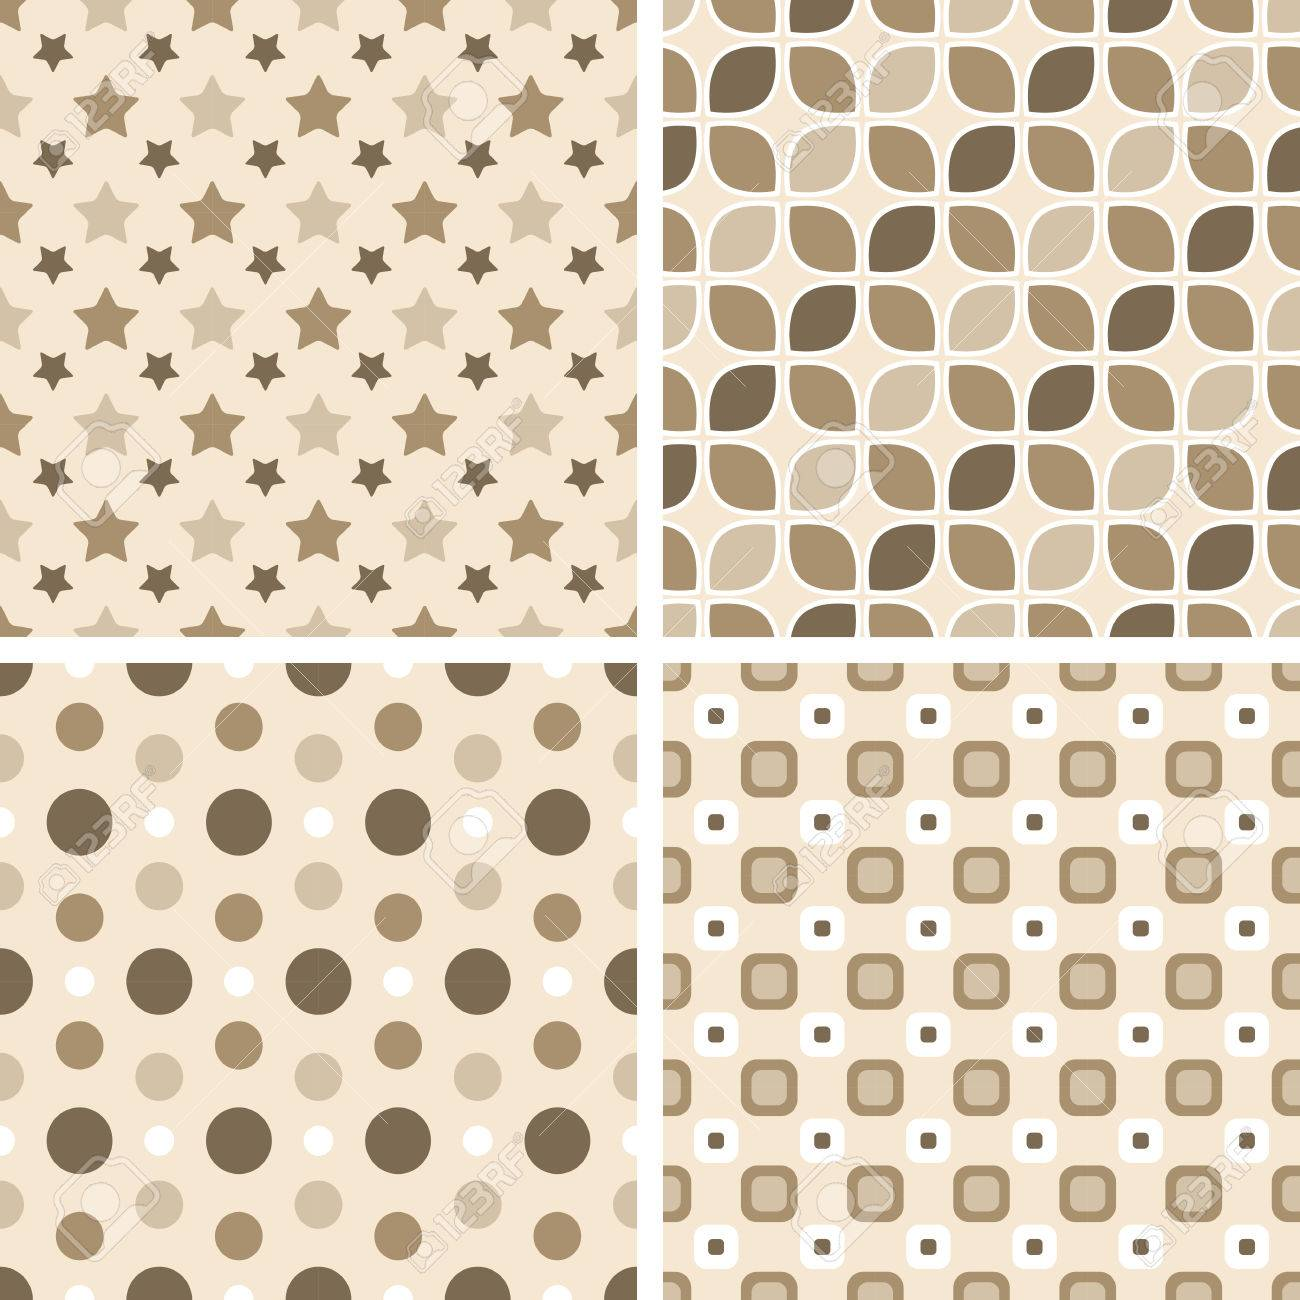 Vector Seamless Tiling Patterns - Geometric. For Printing On ...